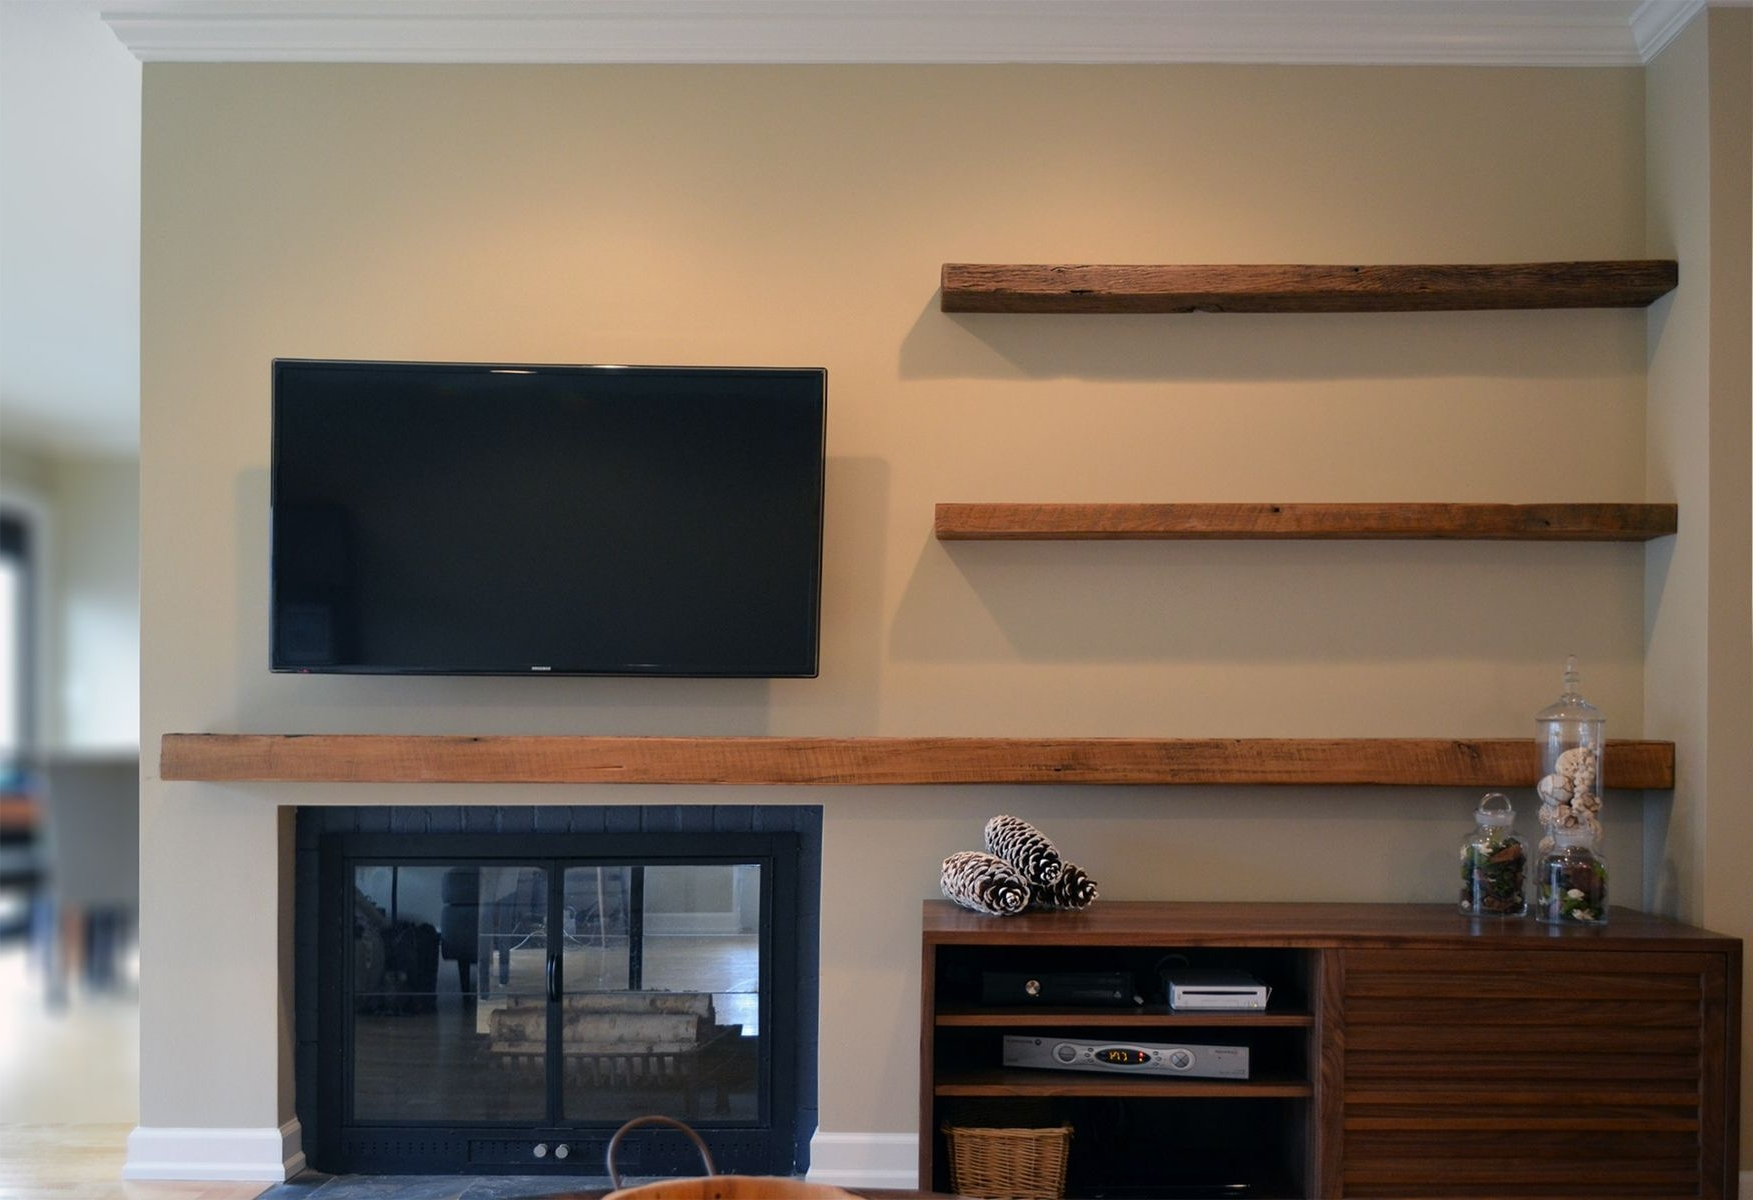 2018 Wall Mounted Tv And Barn Wood Floating Shelves Over Fireplace Also Within Over Tv Shelves (View 1 of 20)